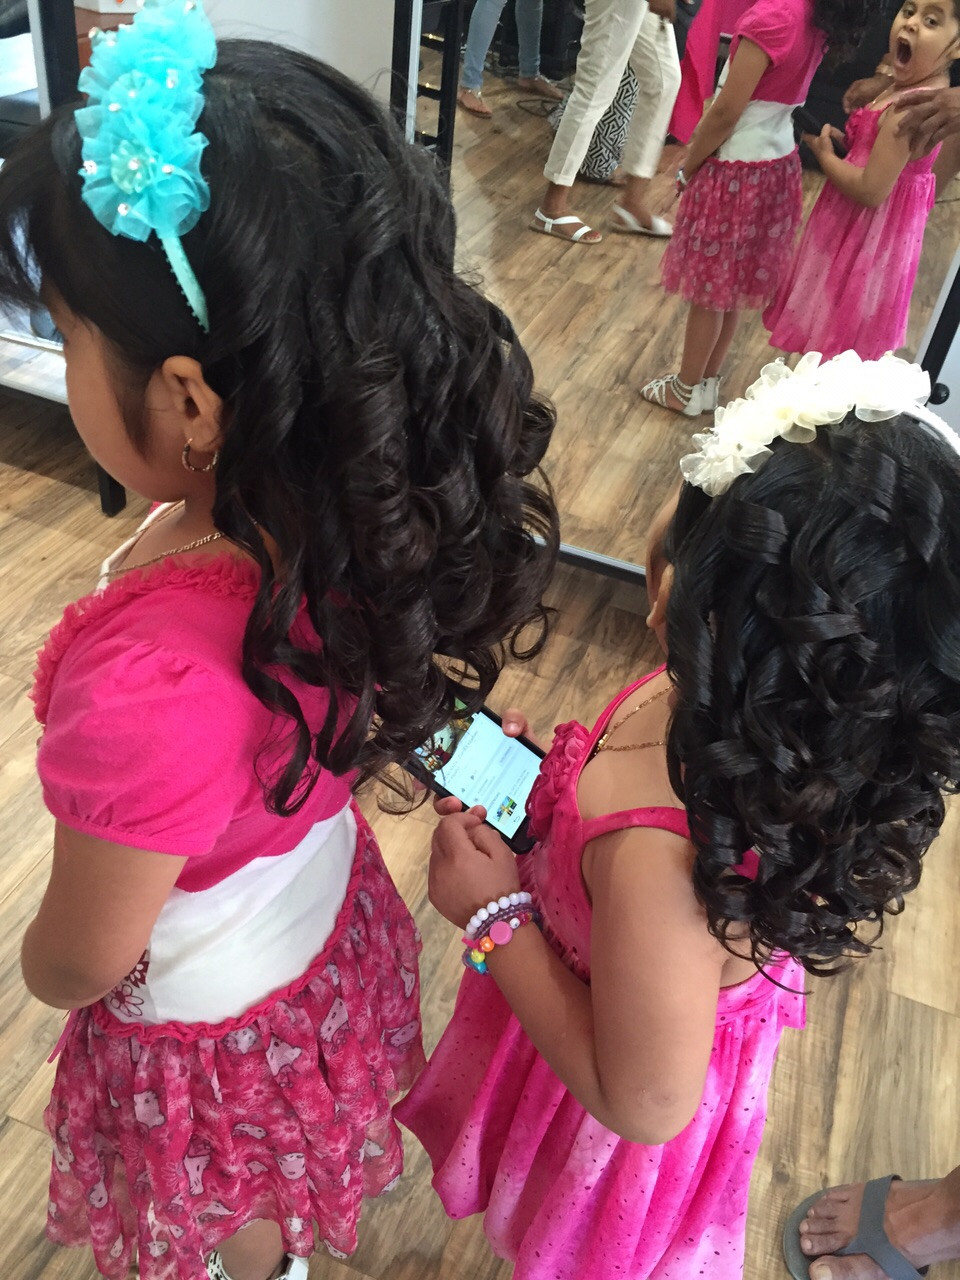 Hair Salon in New York gives little girls curls